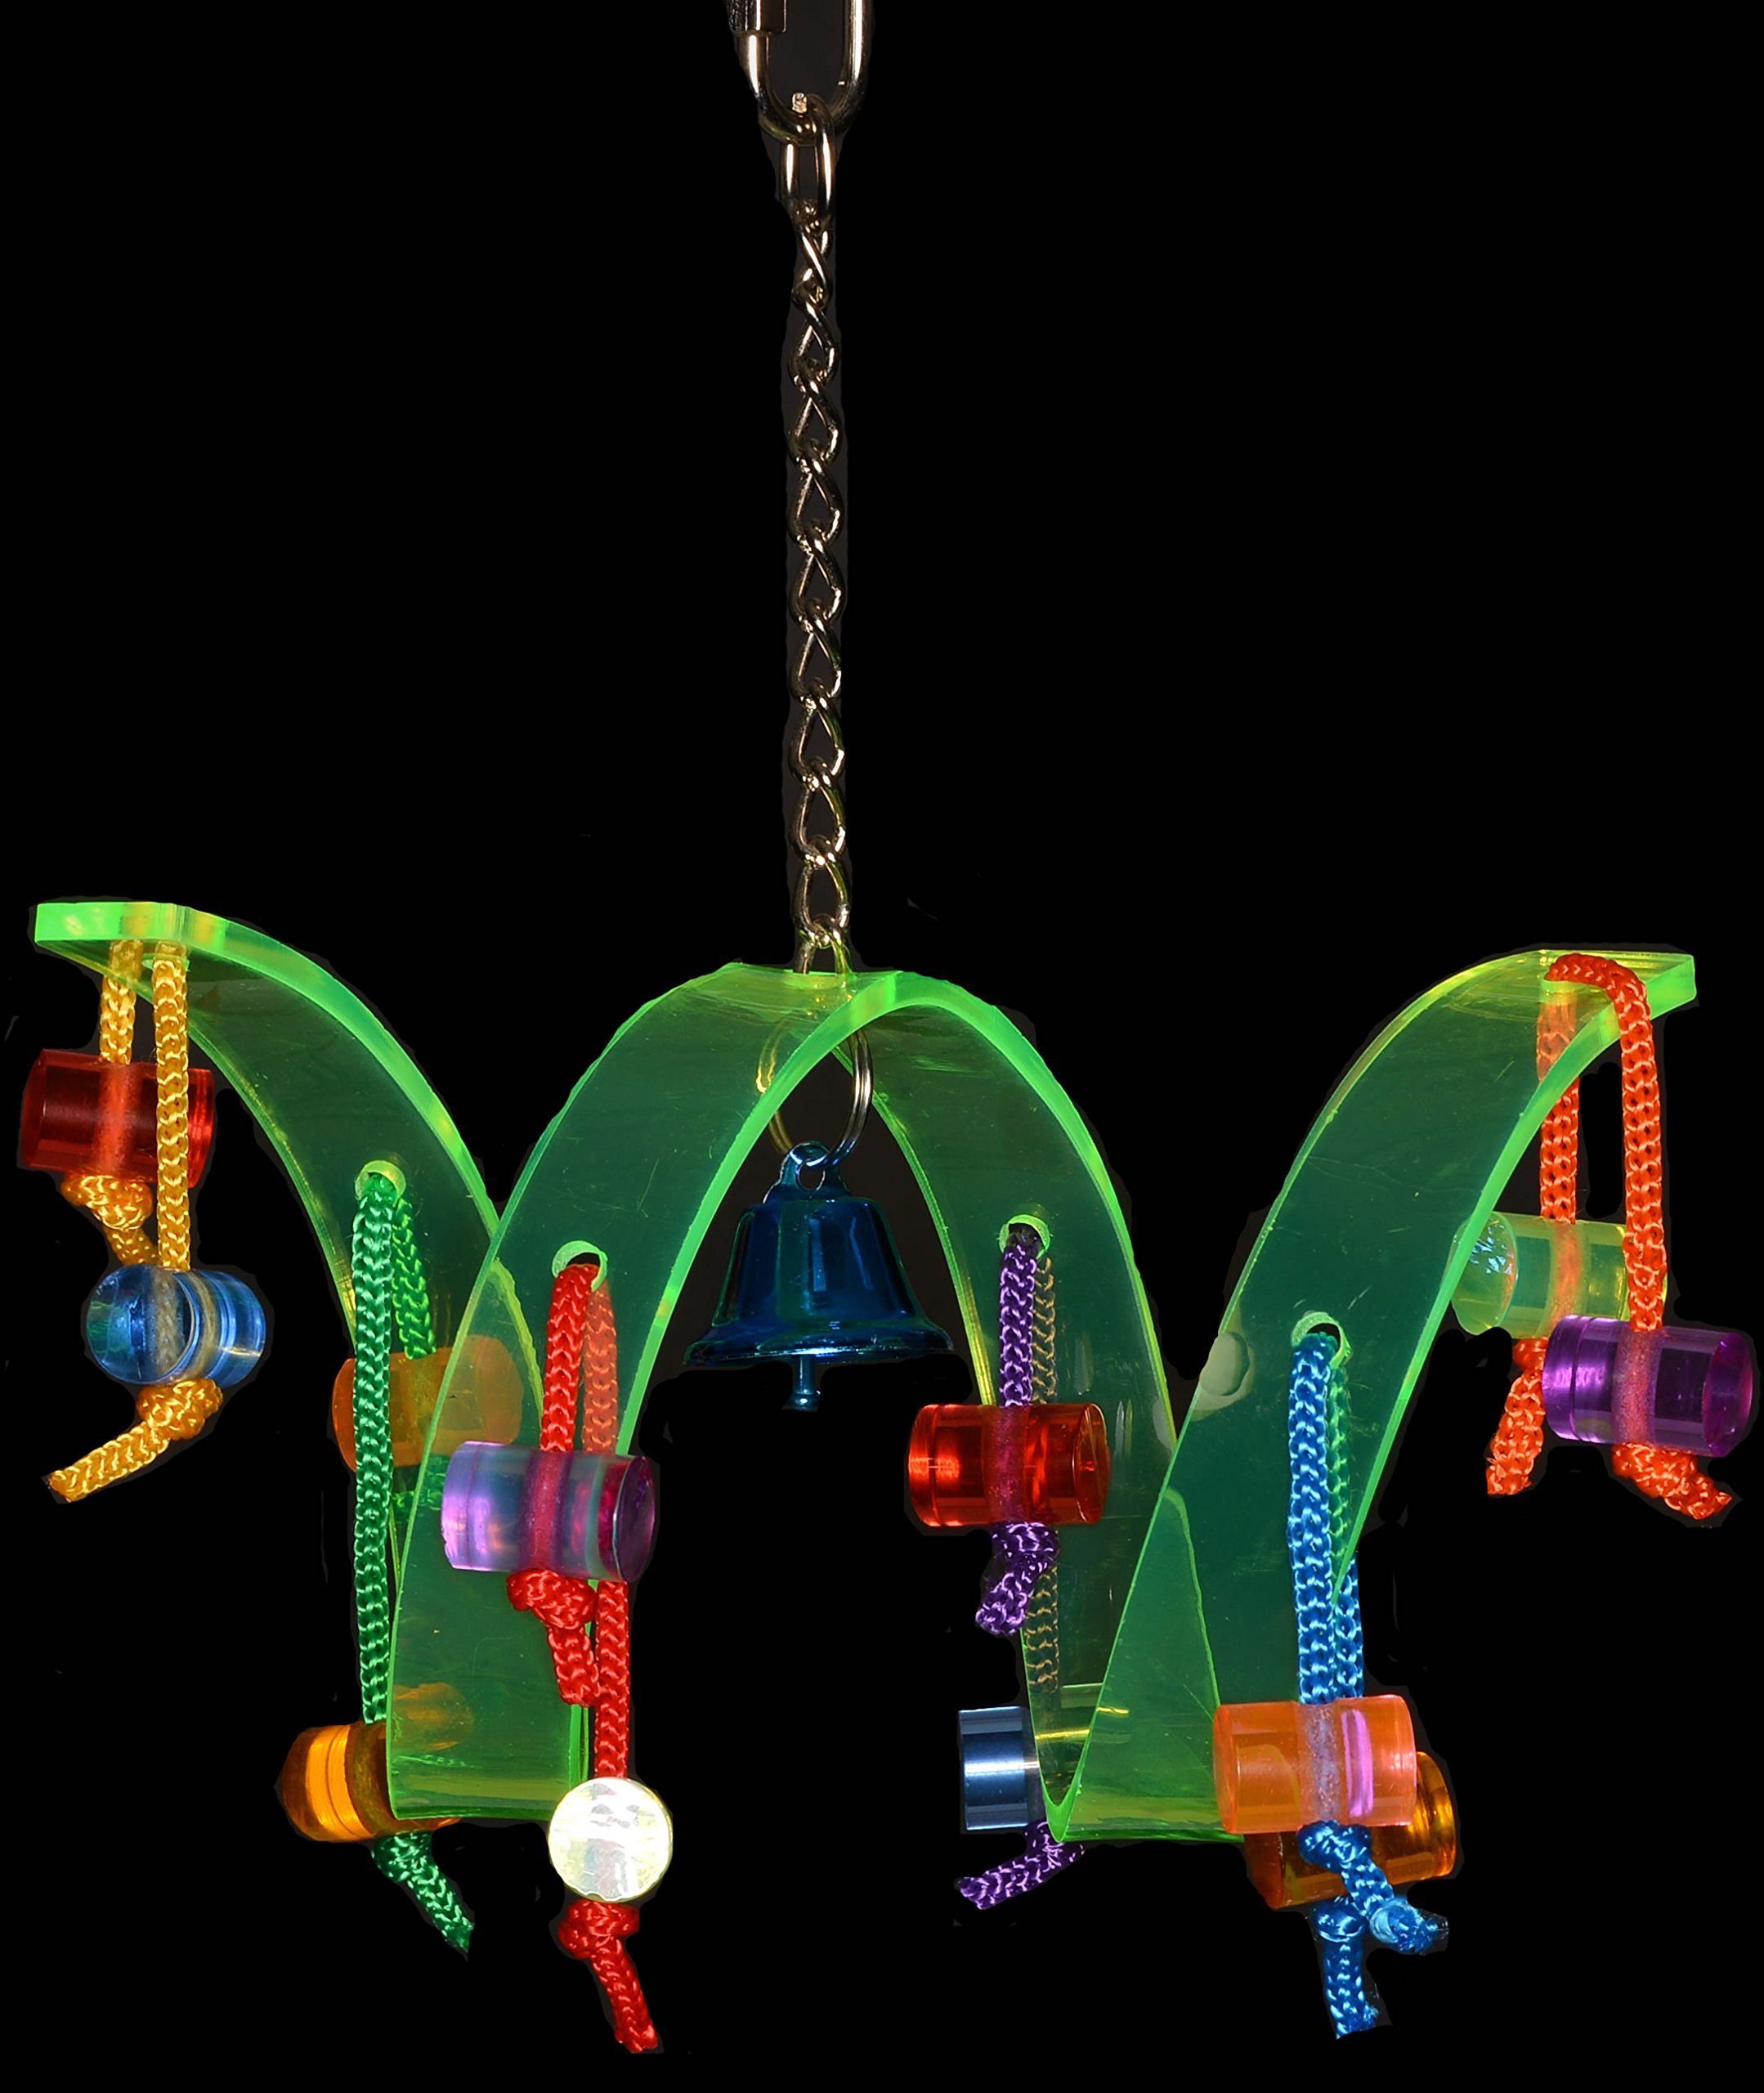 Acrylic Activity Play Tunnel Small Bird Toy with Jingle Bell by Avianweb by Avianweb (Image #3)